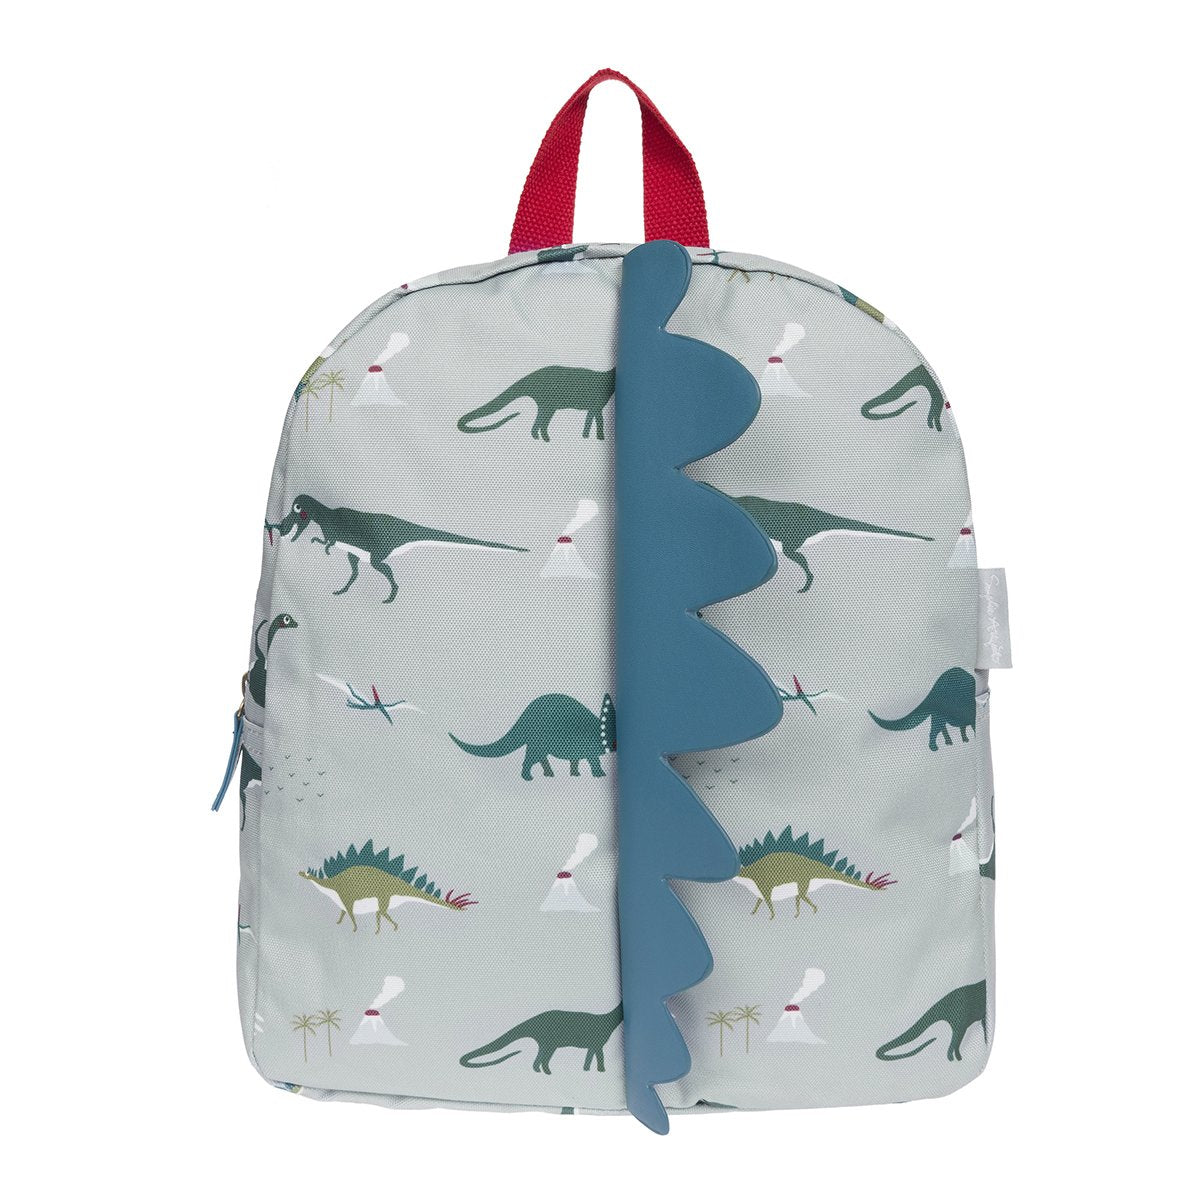 Dinosaurs Kids Backpack by Sophie Allport